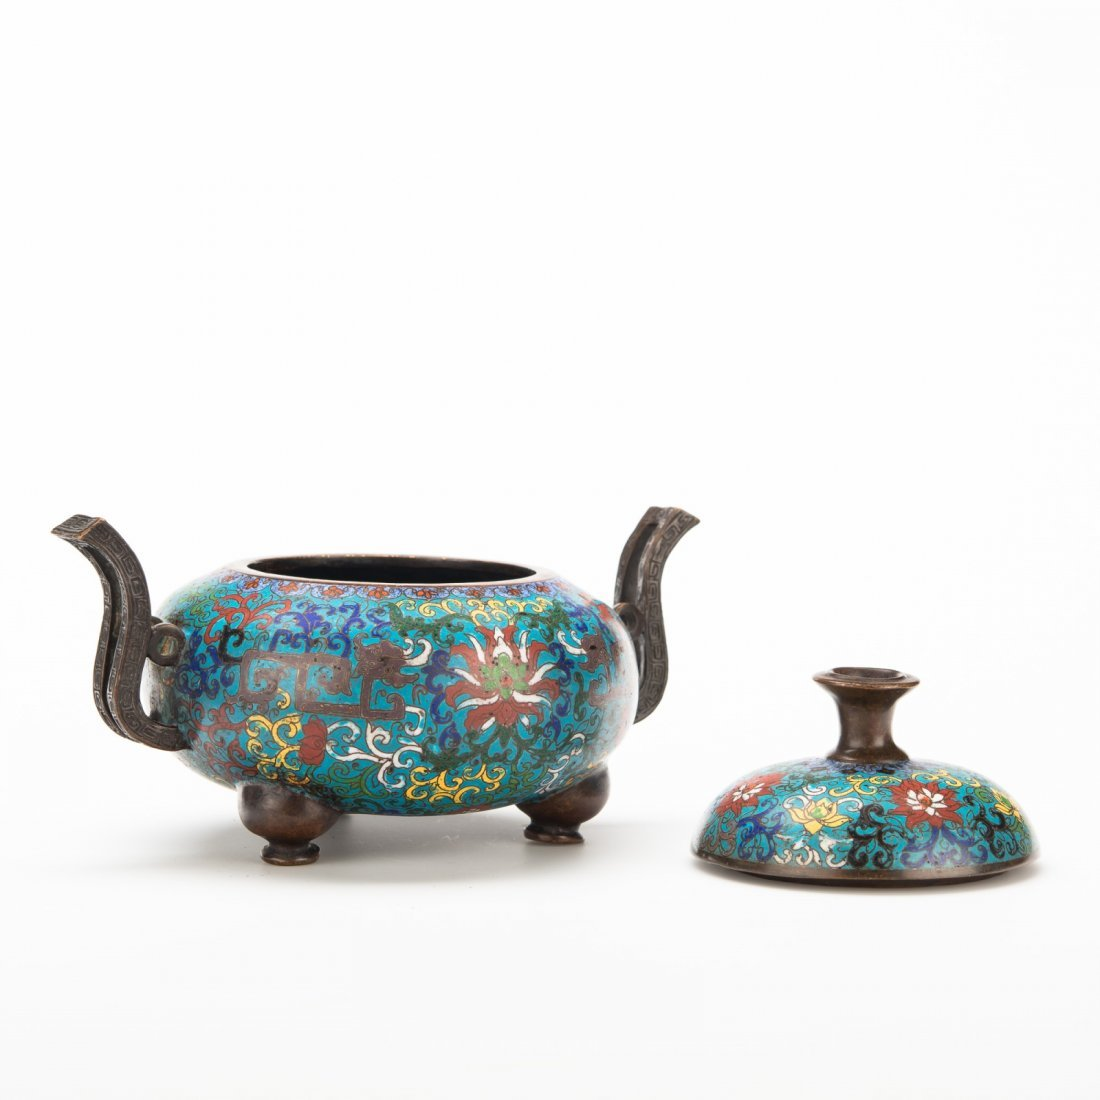 Chinese Cloisonné Tripod Censer and Cover - 2